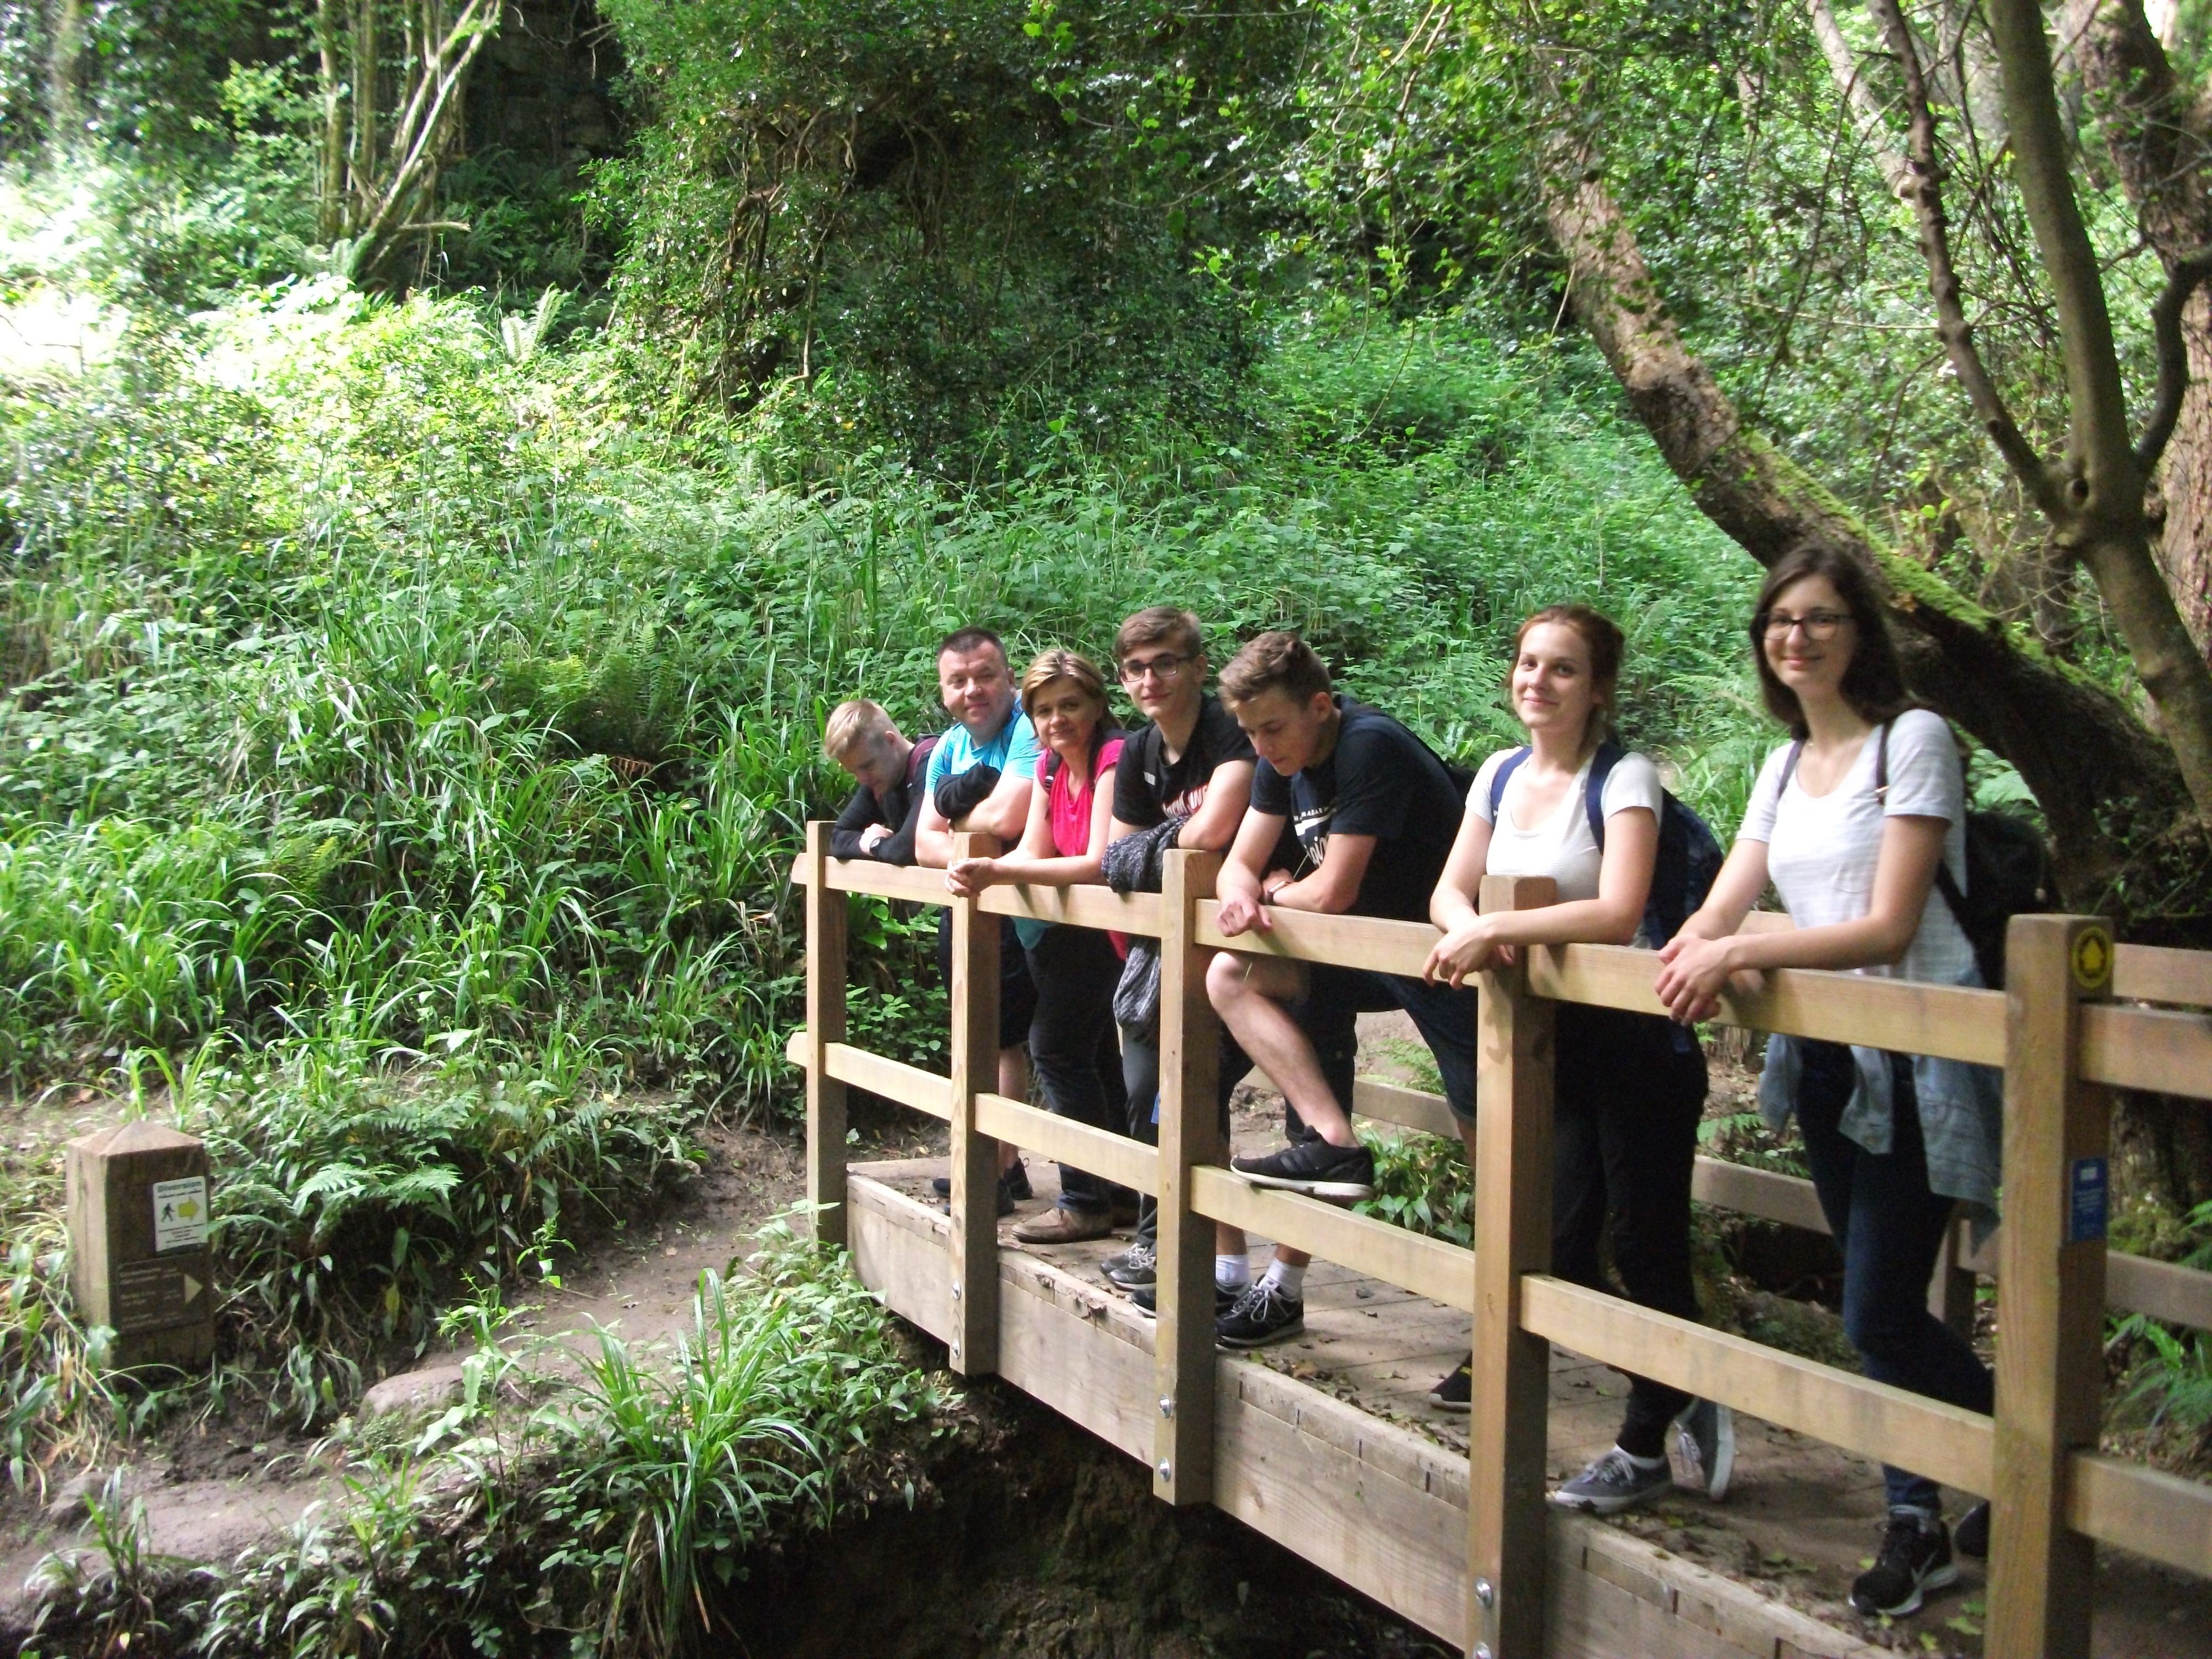 English language students study English in England relax during a countryside walk